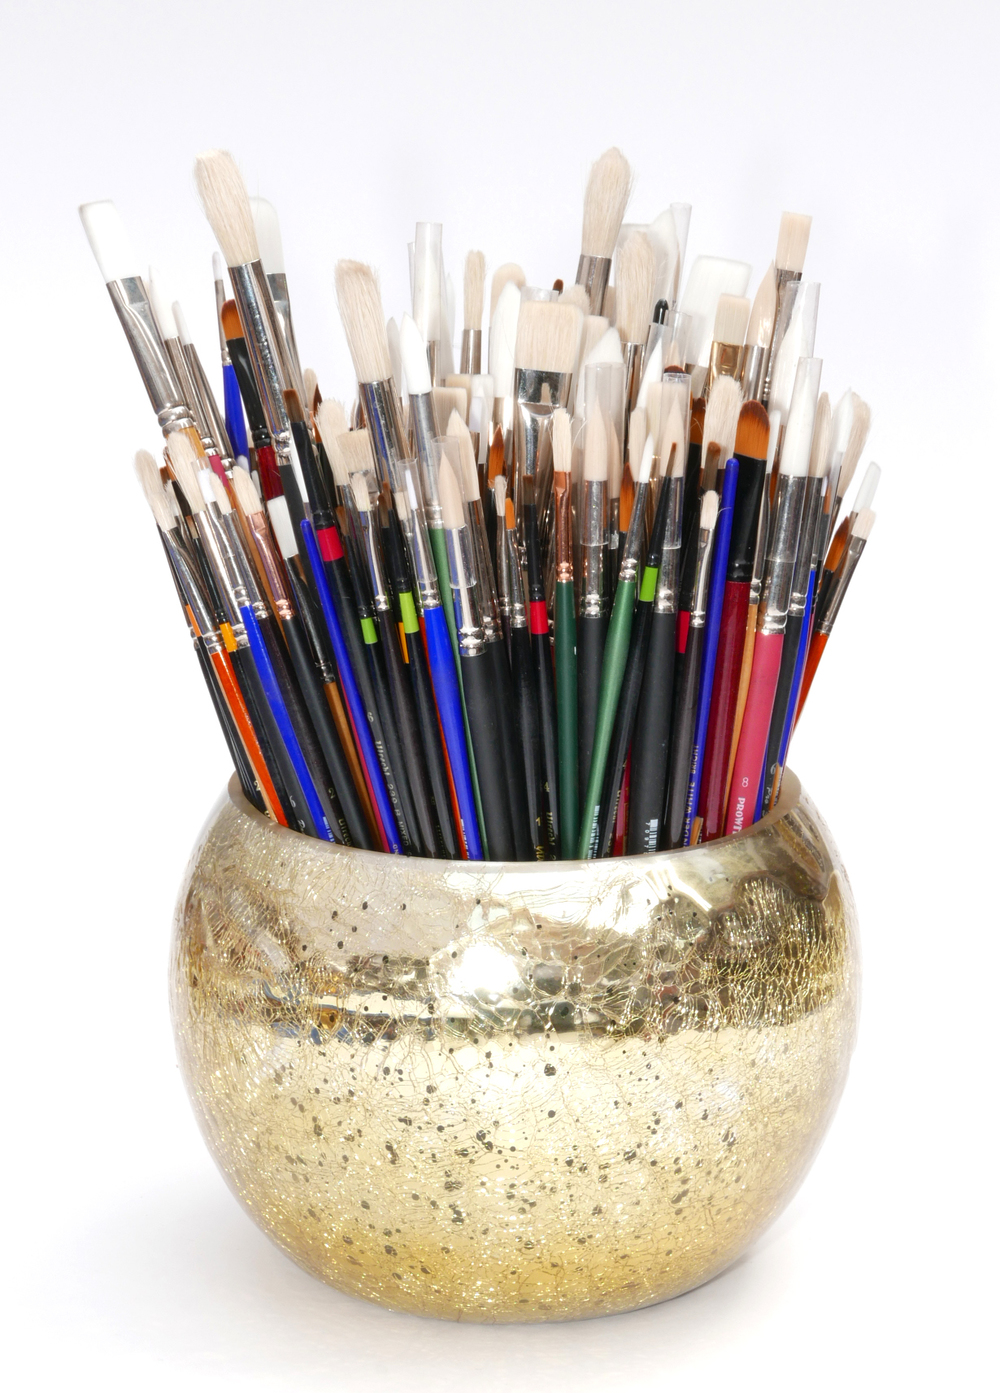 New Paint Brushes in a Handmade Gold Embossed Vase